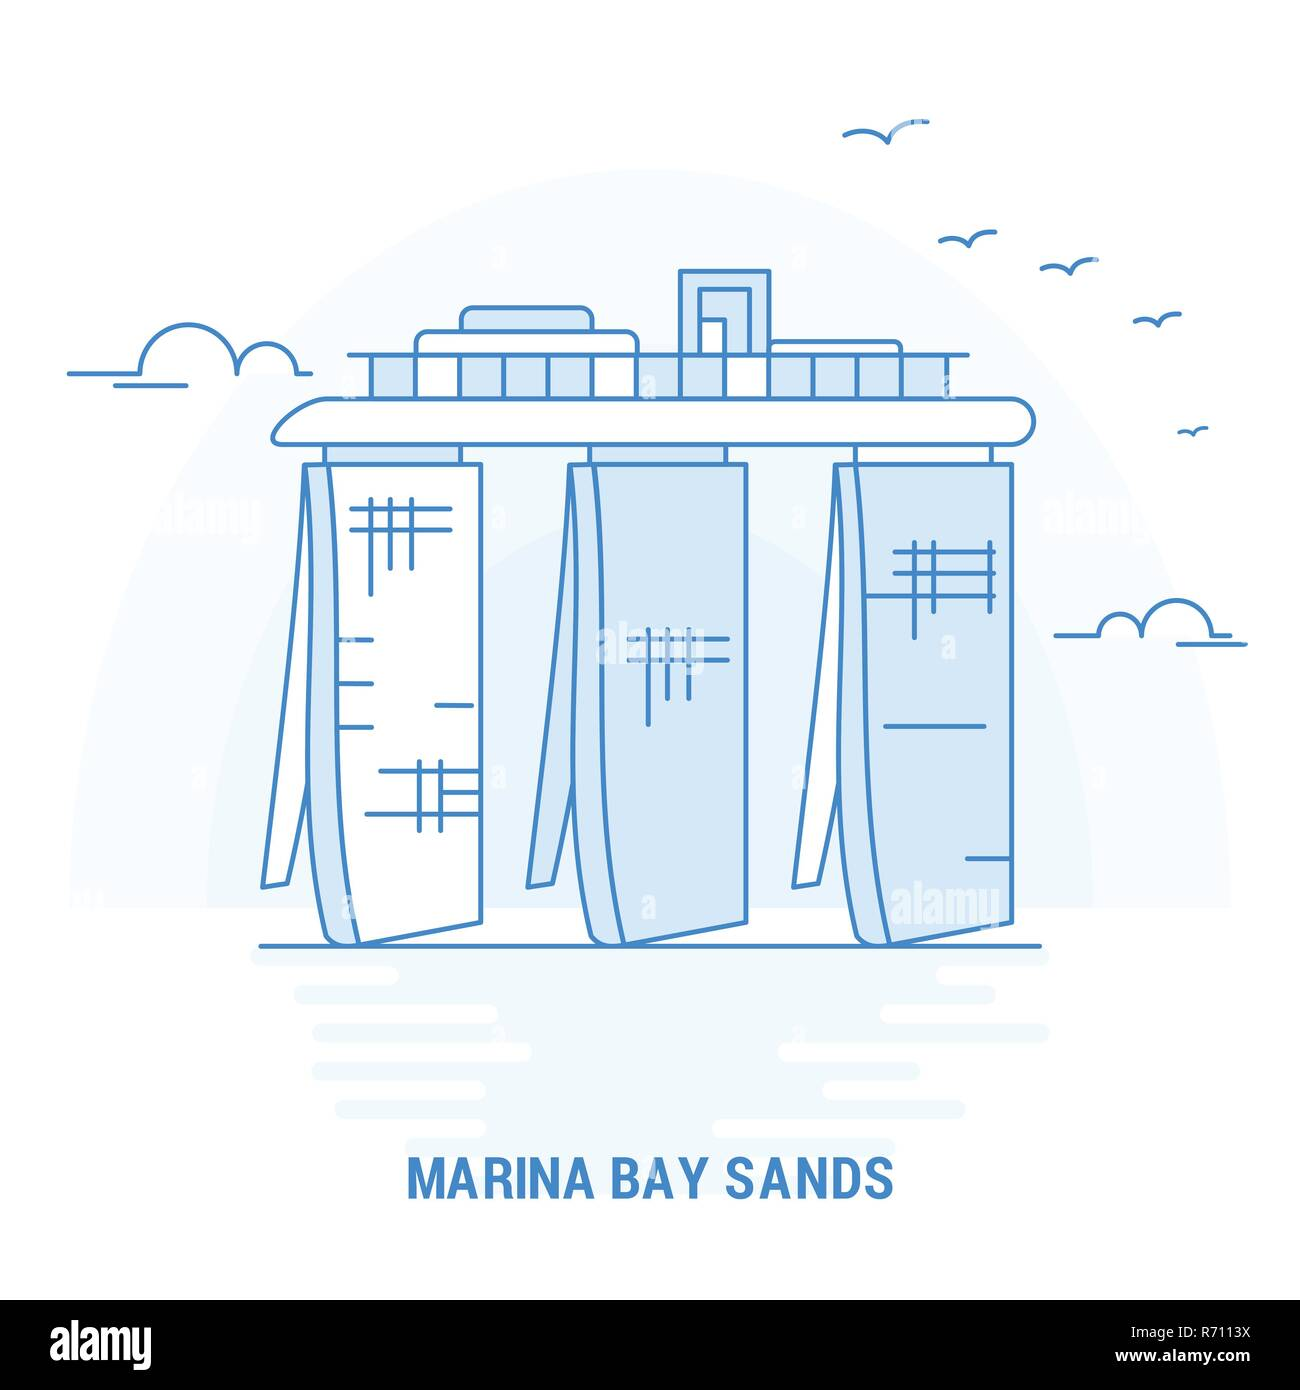 MARINA BAY SANDS Blue Landmark. Creative background and Poster Template - Stock Image